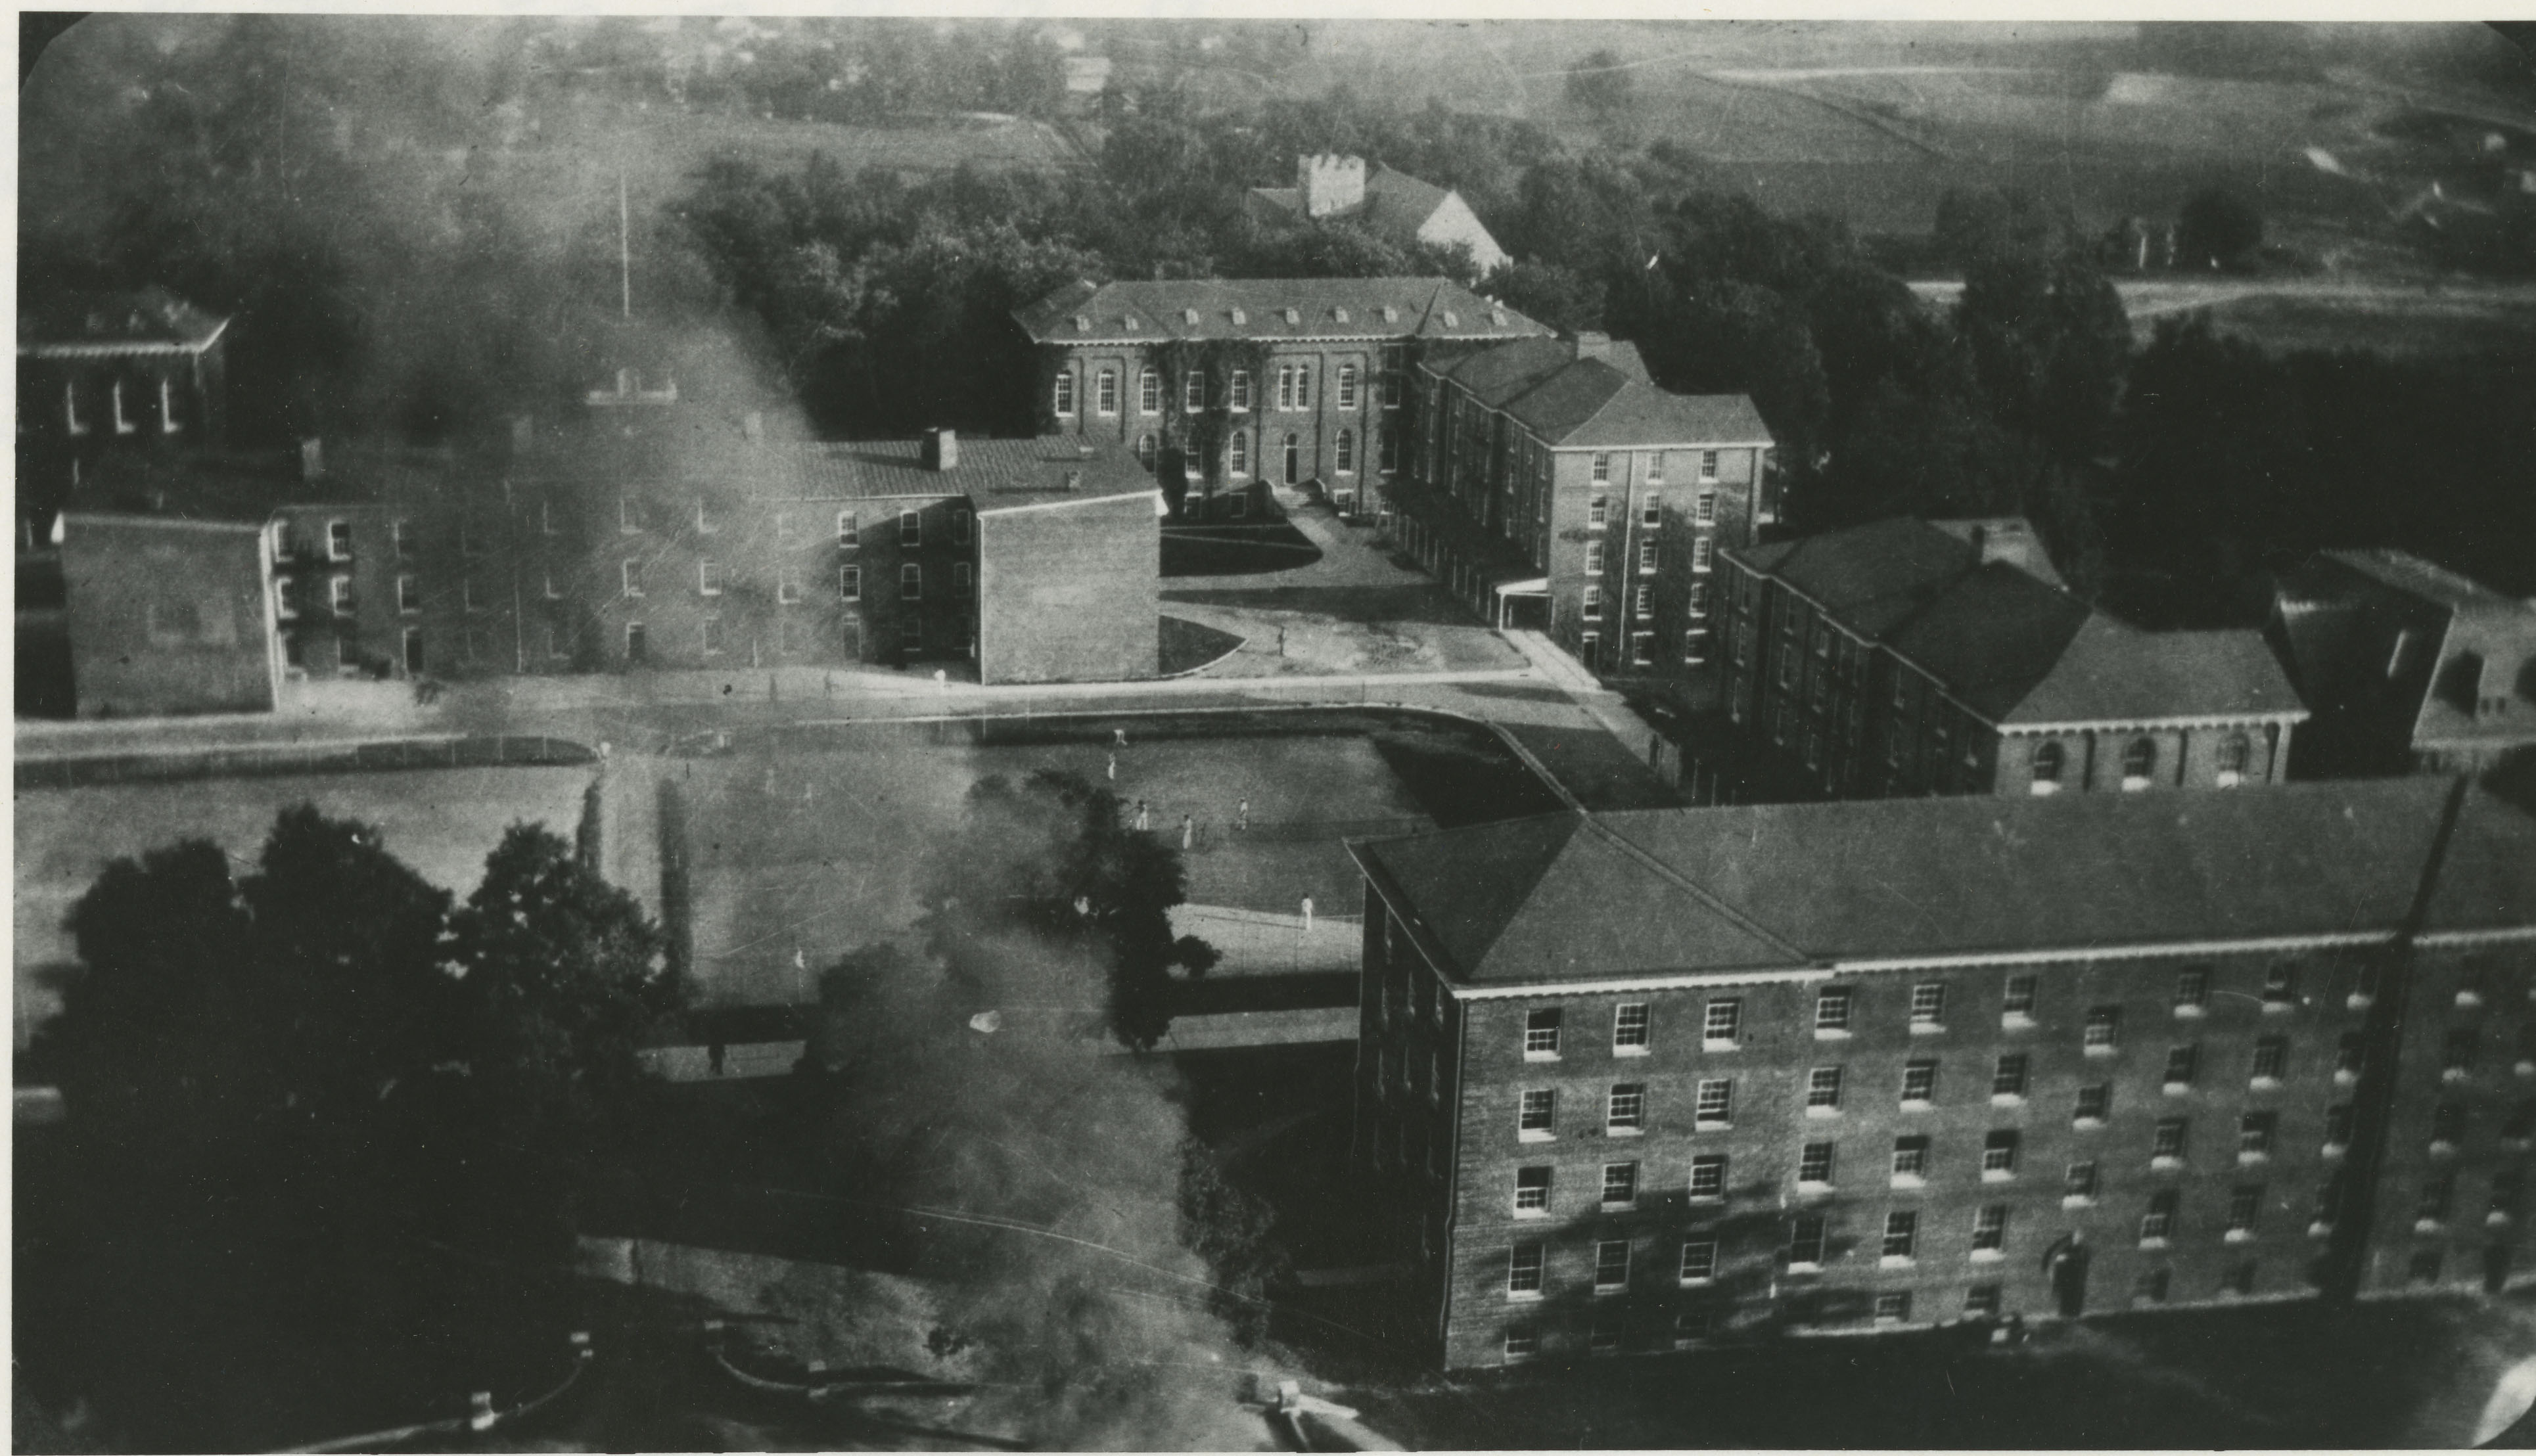 """Looking south from the tall smokestack of the new powerplant. Barracks No. 1 at left center. Clockwise around Barracks No. 1, starting at the top left: First Academic Building, Second Academic Building, Barracks No. 3 [part of the former Brodie Hall], Barracks No. 5, Barracks No. 6."" You can also see part of the old library at the top center."